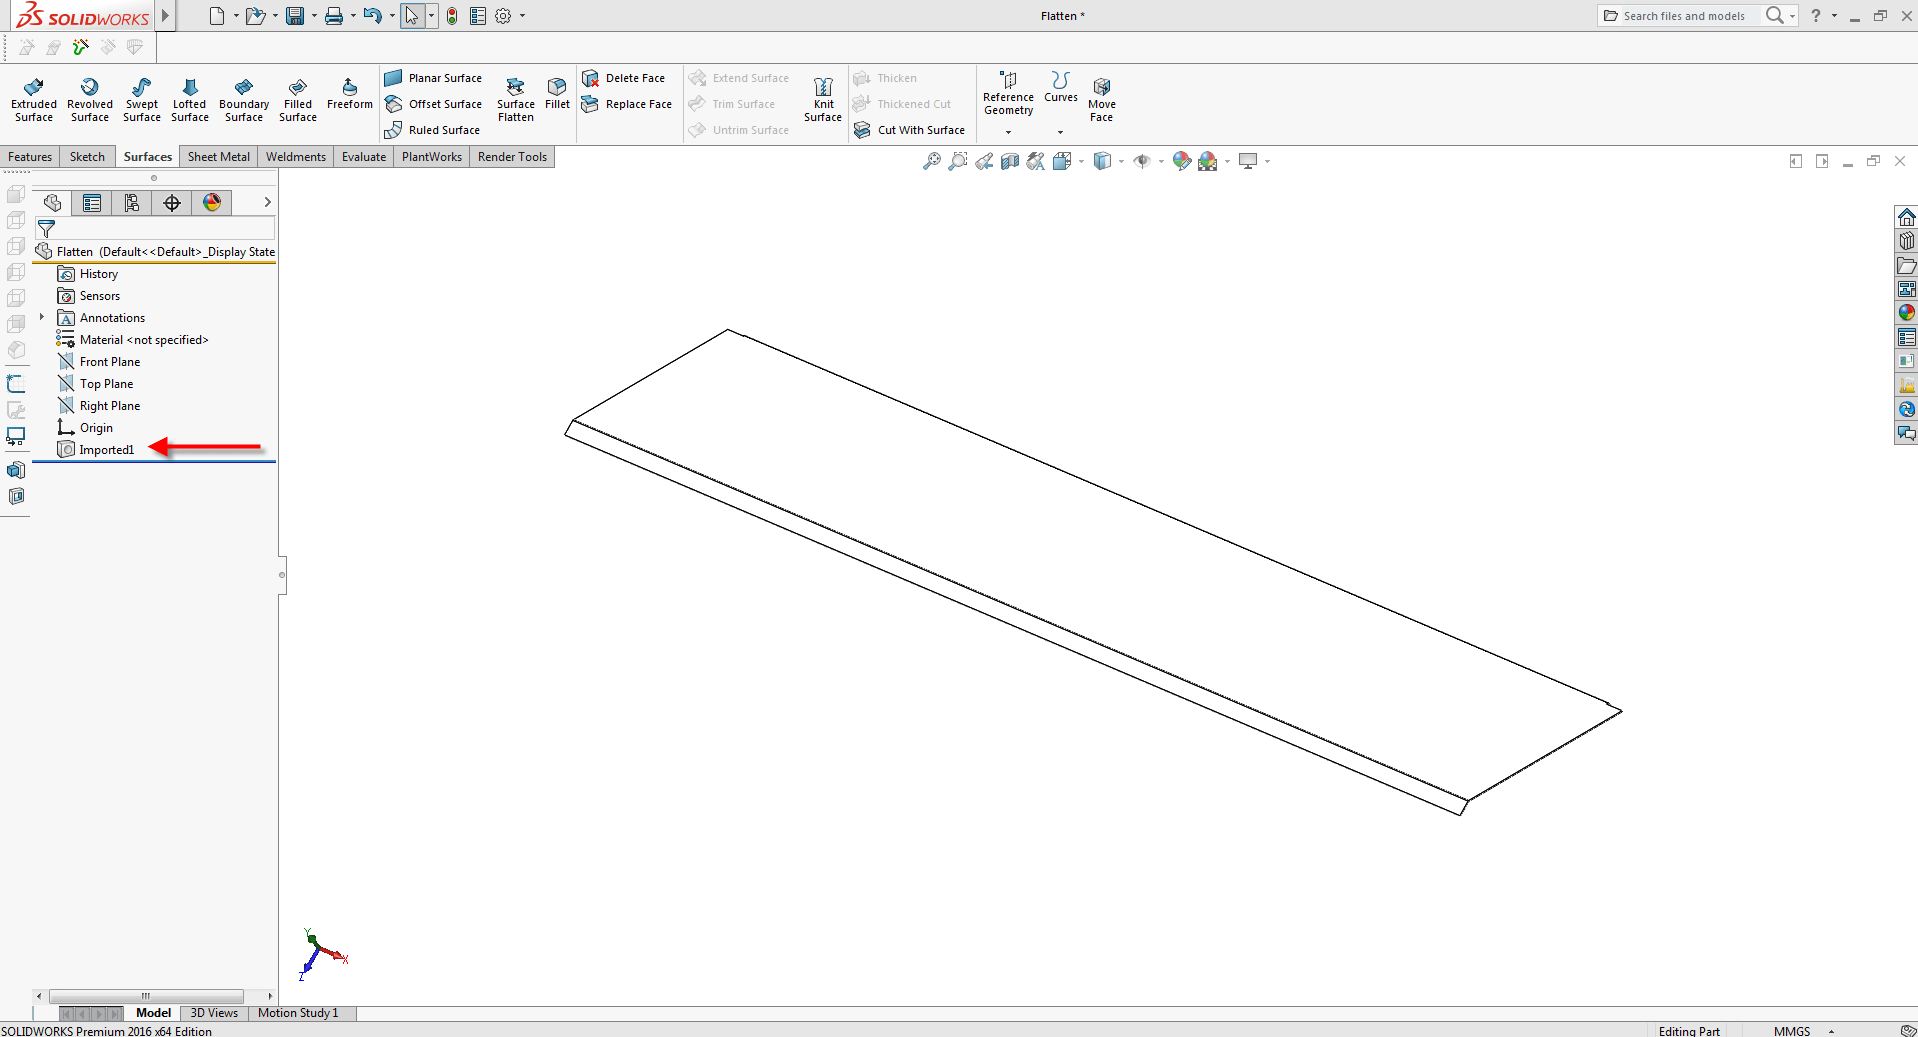 File imported into SOLIDWORKS